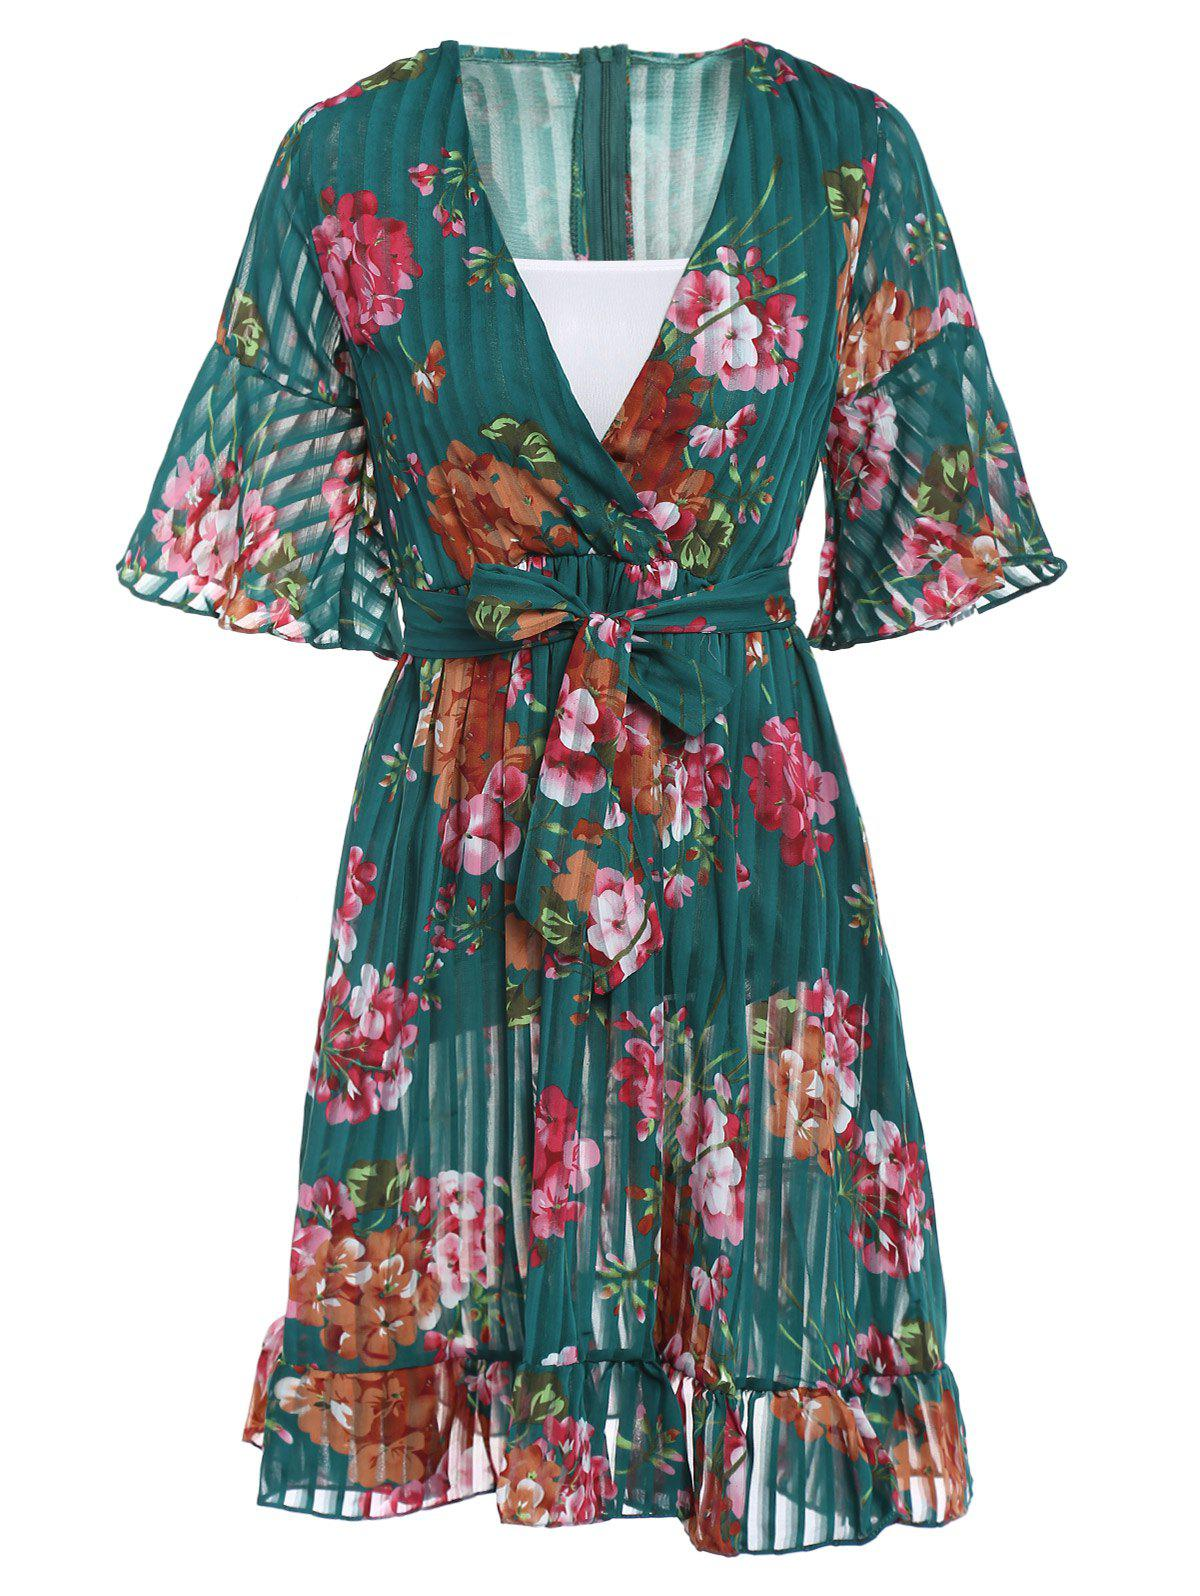 Stylish Women's Flare Sleeve V-Neck Floral Print Dress - GREEN ONE SIZE(FIT SIZE XS TO M)